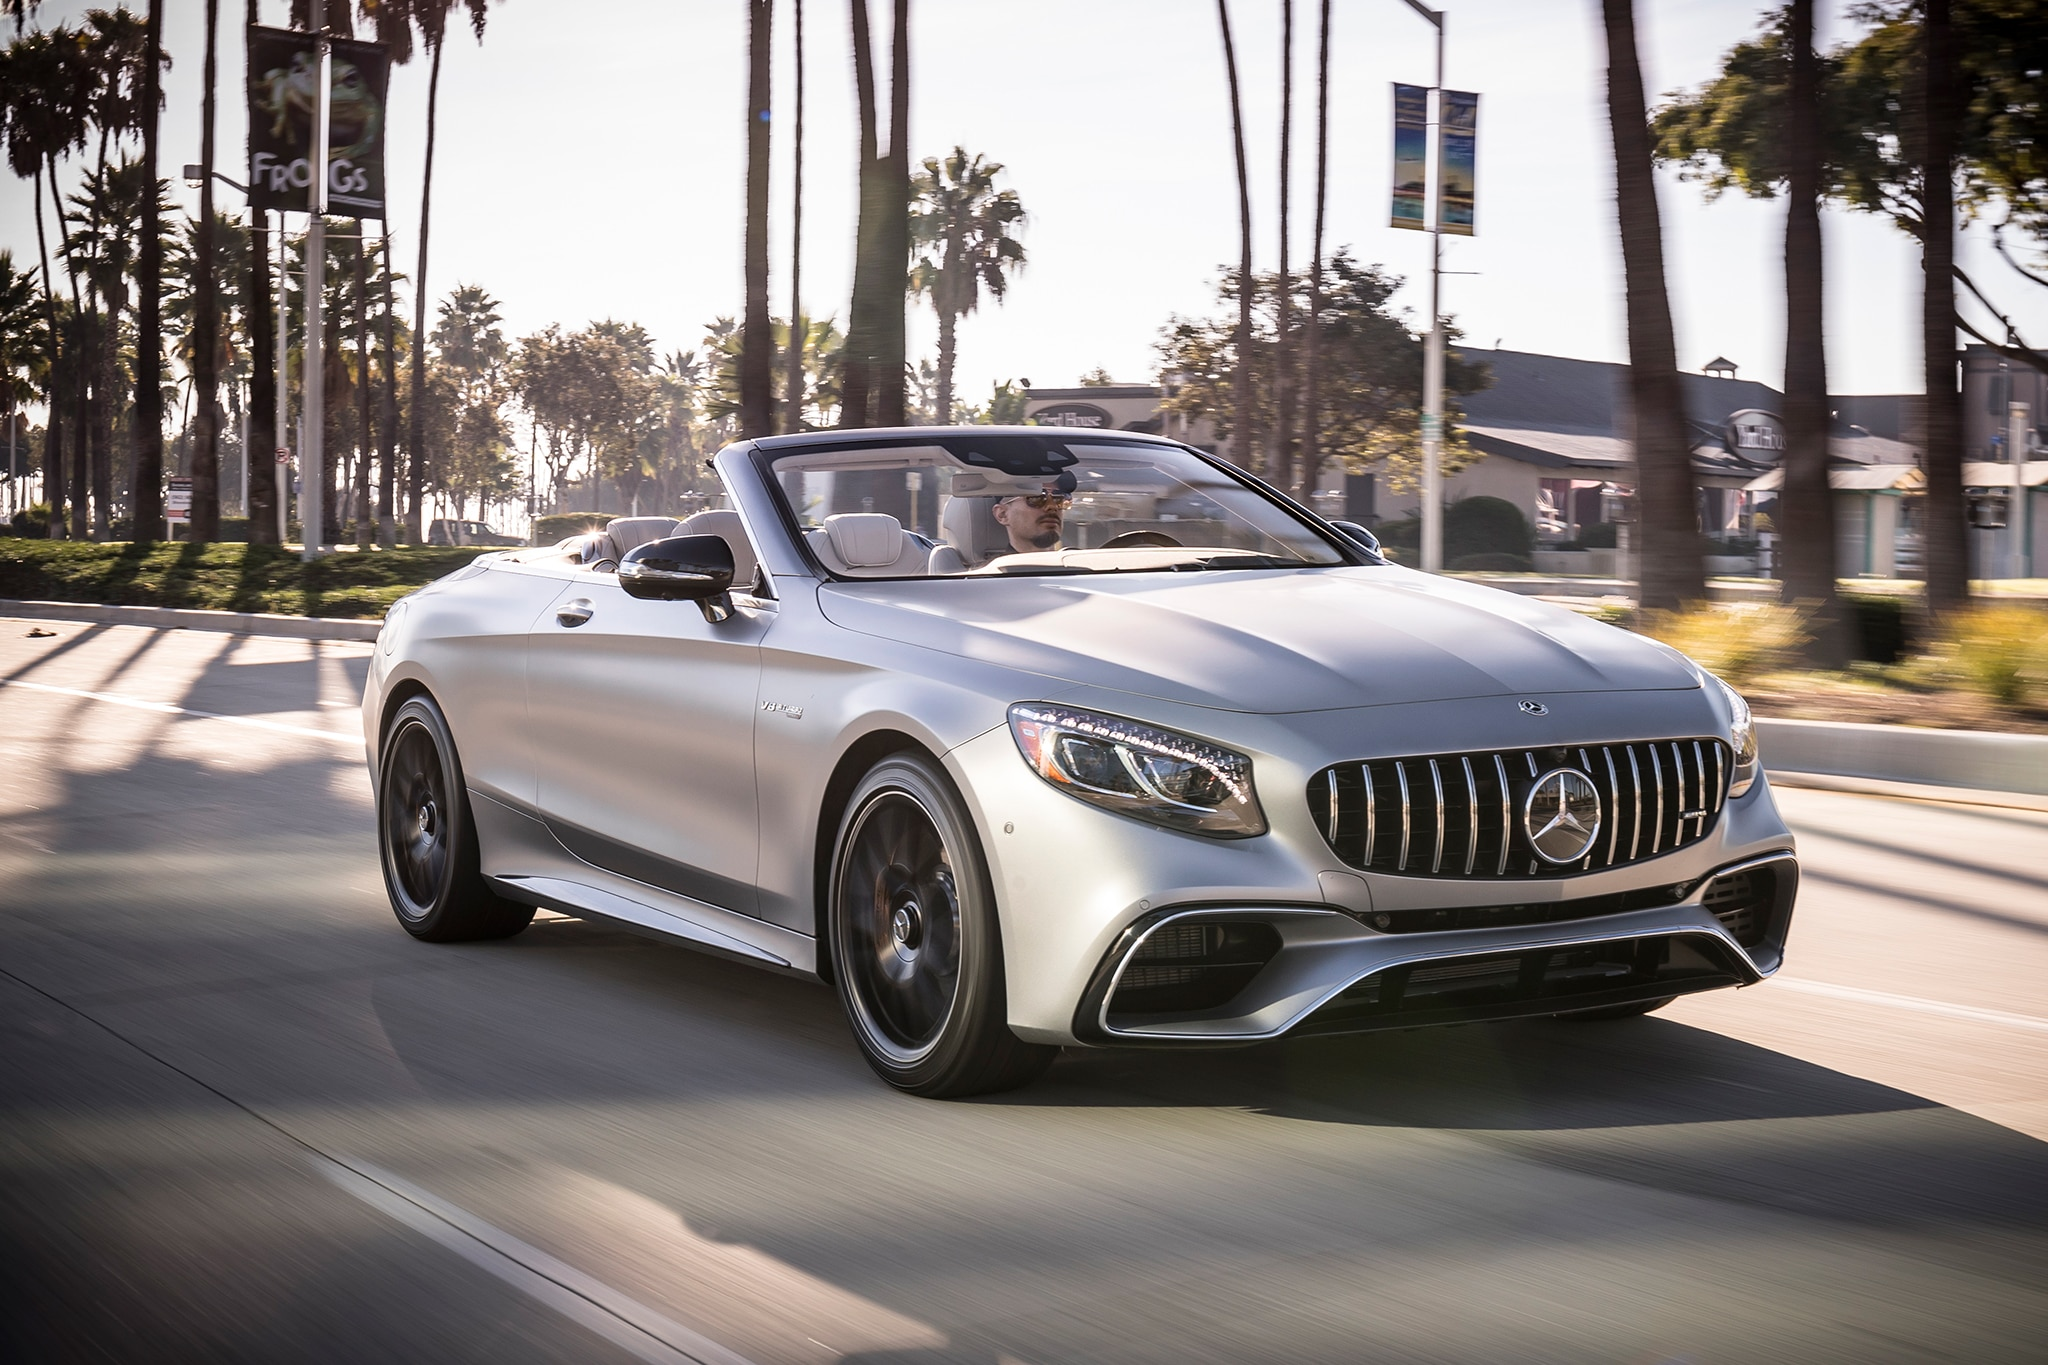 2018 Mercedes AMG S63 Cabriolet Front Three Quarter In Motion 04